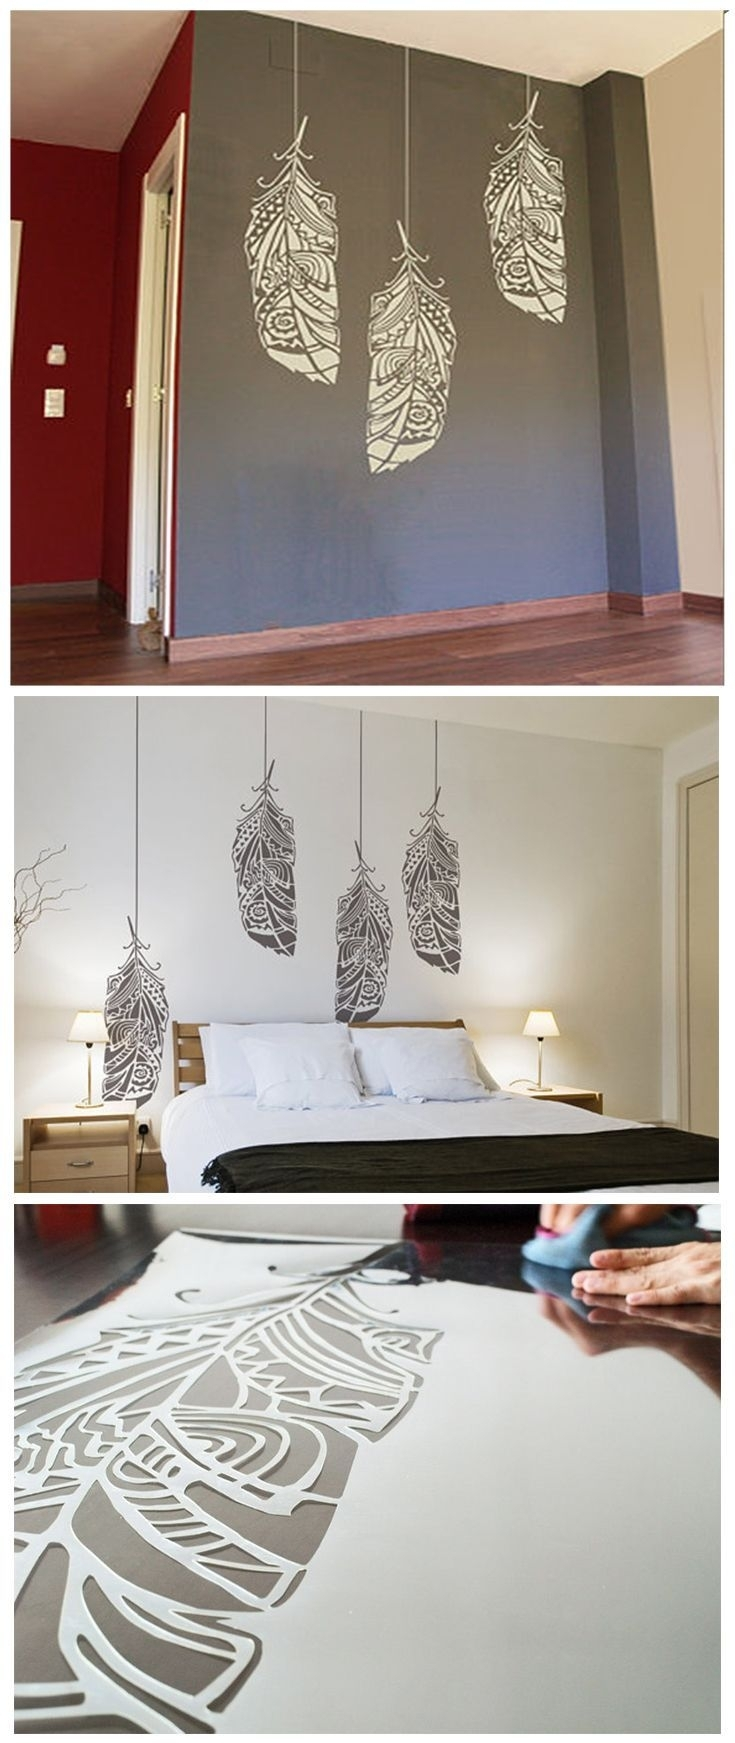 Feather Stencil, Ethnic Decor Element For Wall, Furniture Or In Latest Scandinavian Fabric Wall Art (View 8 of 15)